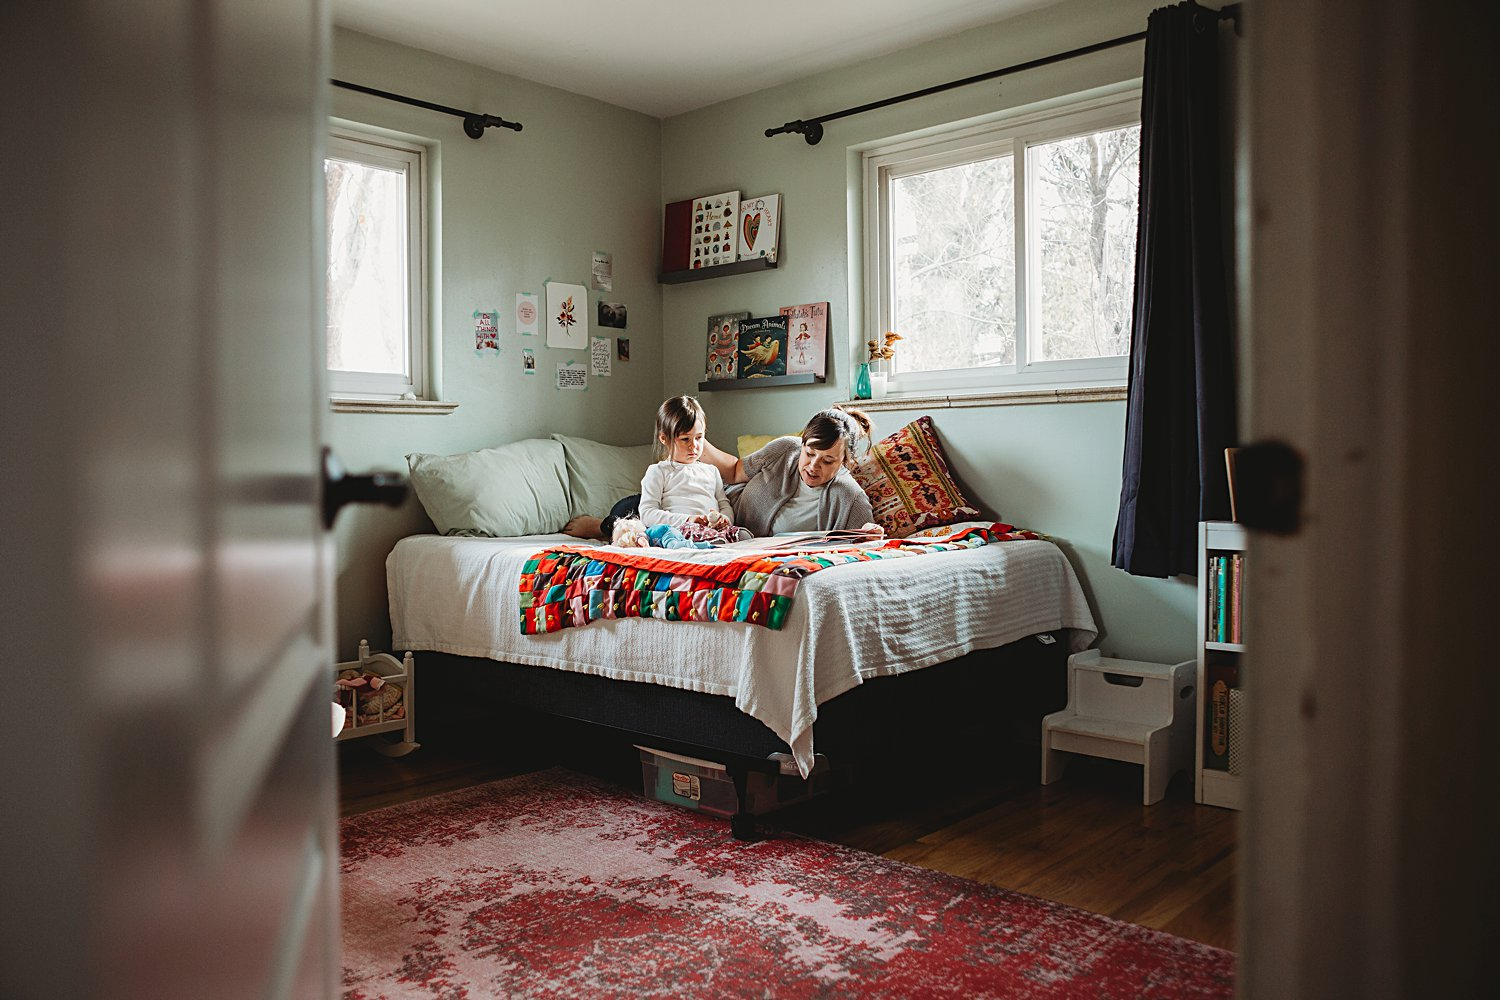 Mom reading with young daughter in bed